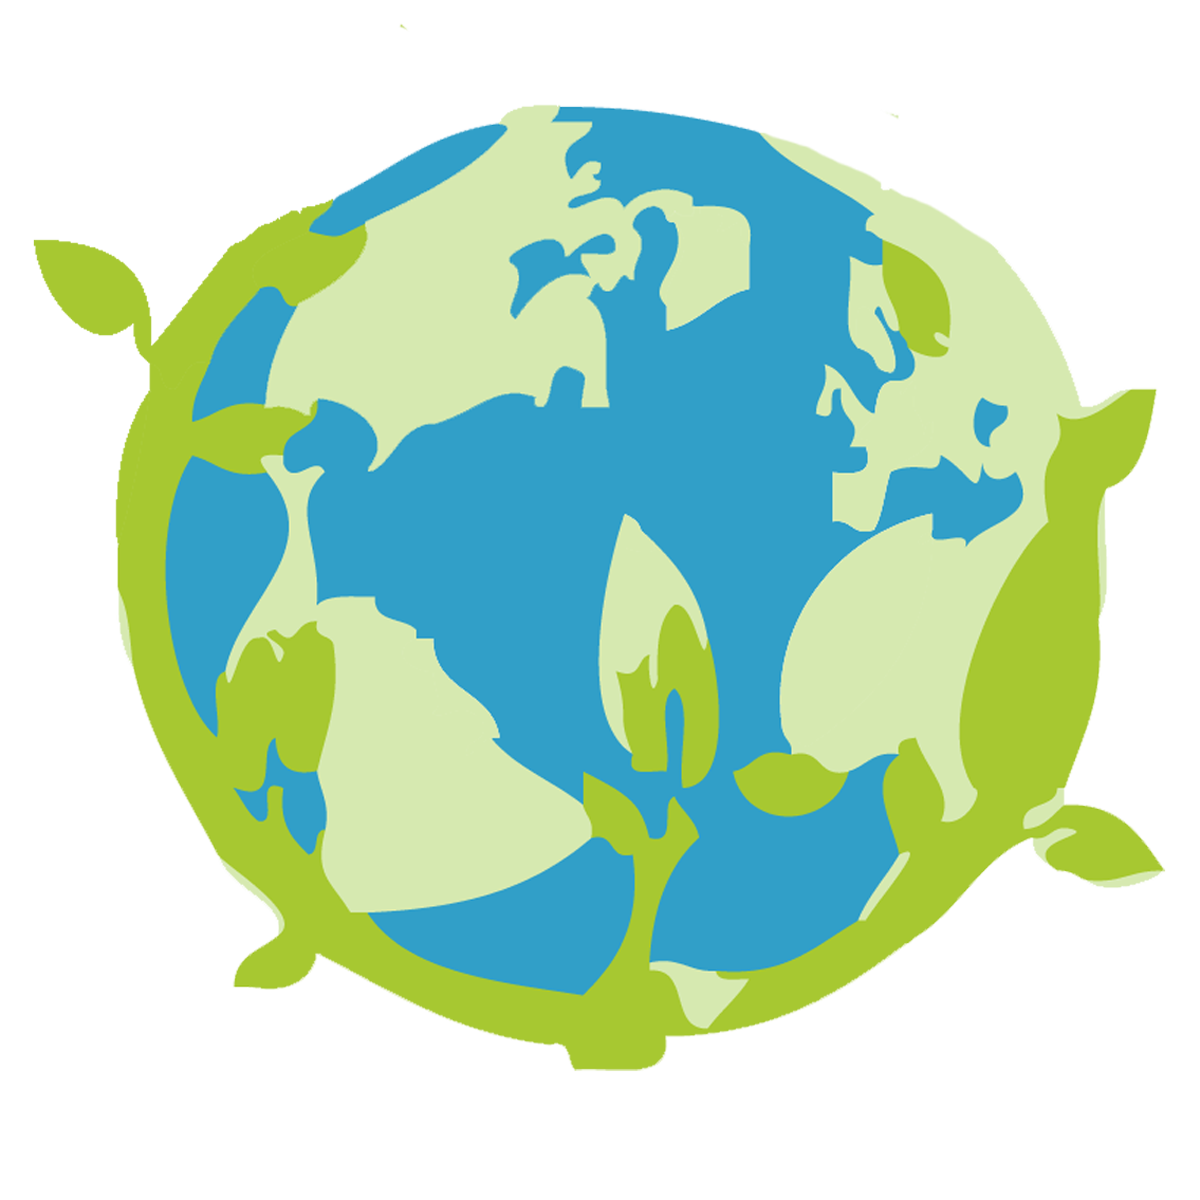 Earth day clip art pictures free clipart images 5